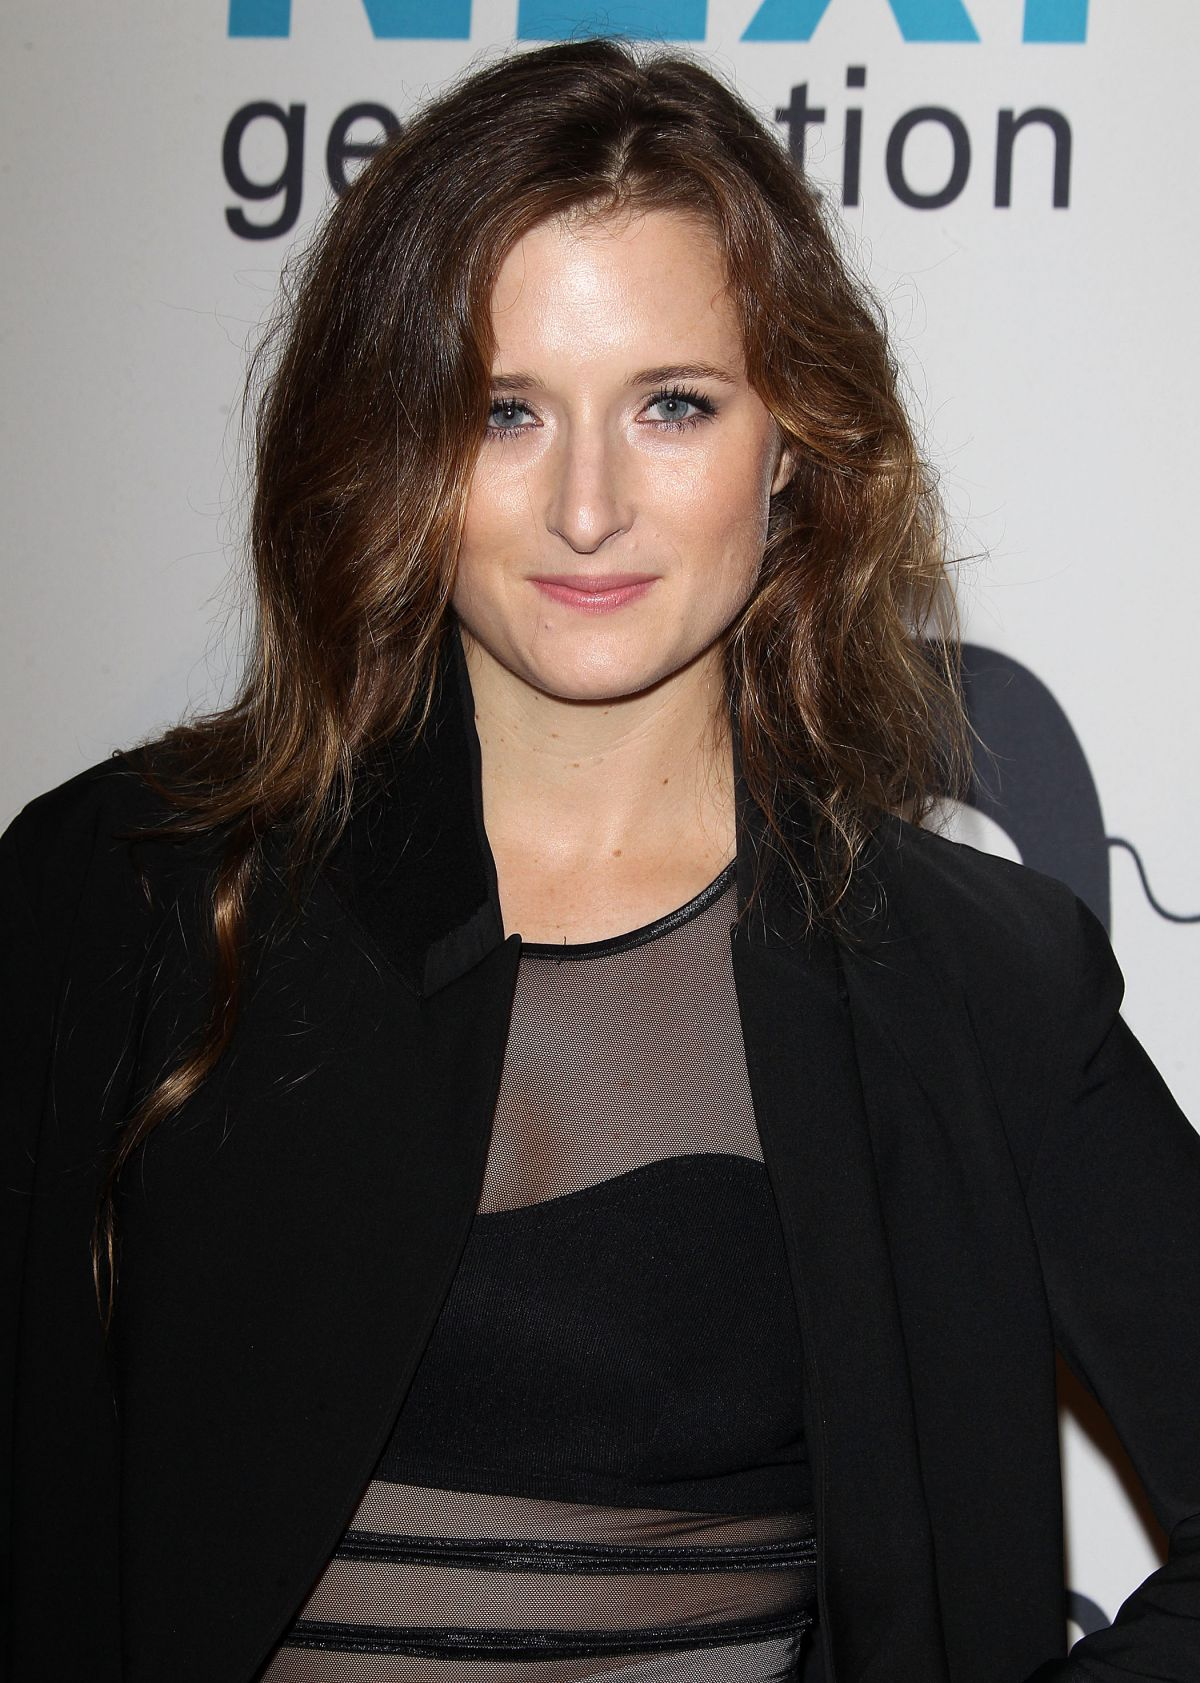 grace gummer mr robotgrace gummer mr robot, grace gummer tattoo, grace gummer good wife, grace gummer penny, grace gummer imdb, grace gummer husband, grace gummer instagram, grace gummer american horror story, grace gummer vk, grace gummer, grace gummer ahs, grace gummer twitter, grace gummer tumblr, grace gummer elementary, grace gummer photo, grace gummer parents, grace gummer mamie, grace gummer boyfriend, grace gummer extant, grace gummer movies and tv shows